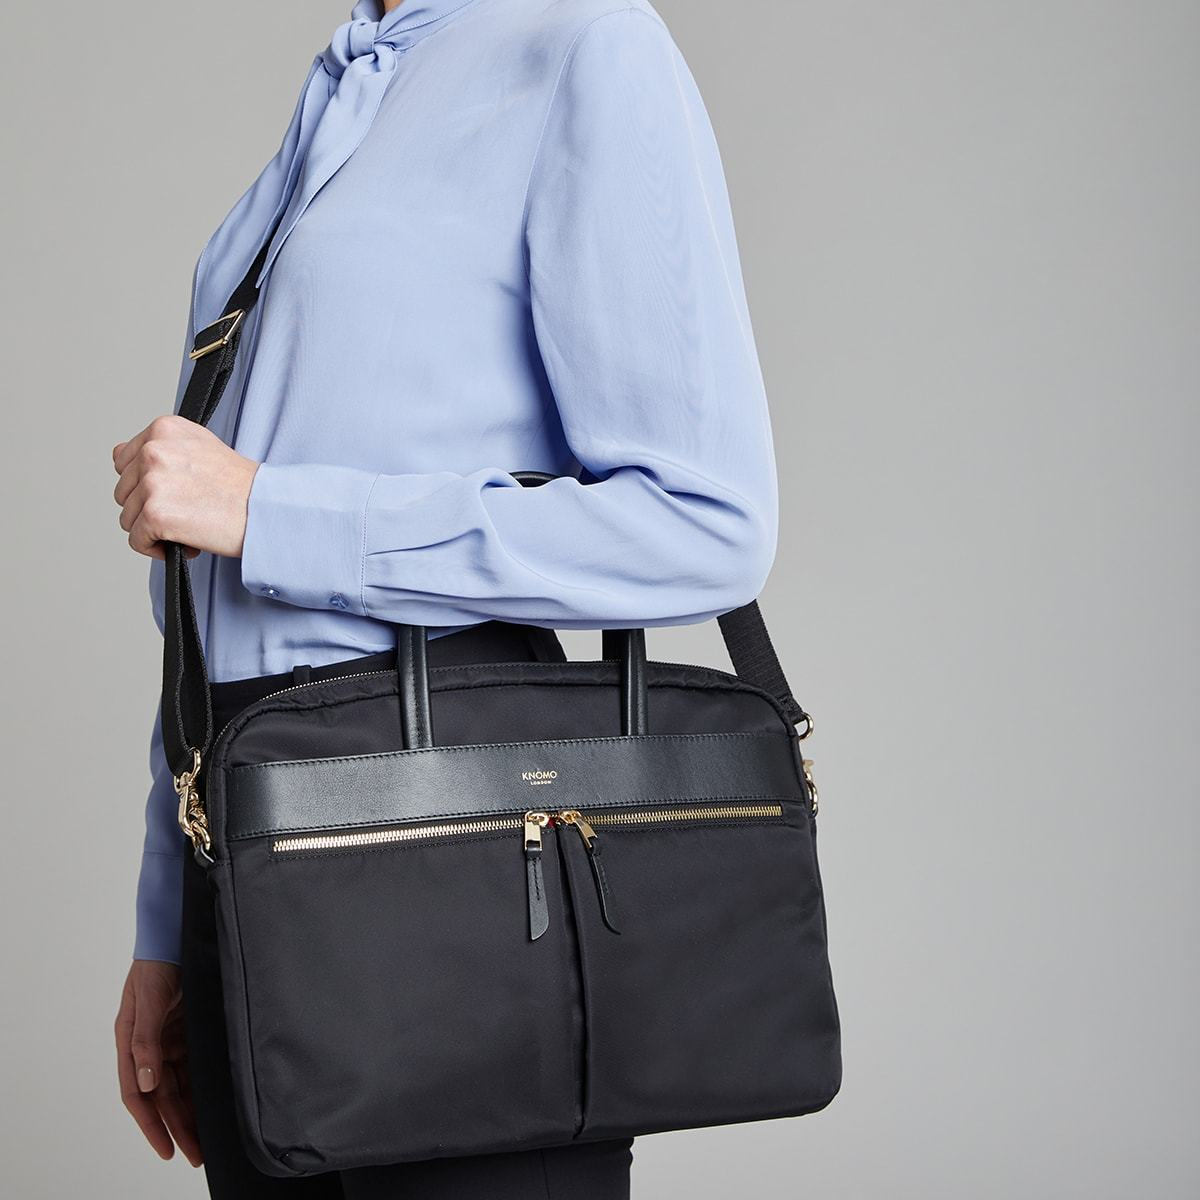 "KNOMO Hanover Laptop Briefcase Female Model Wearing Over Shoulder 14"" -  Black 